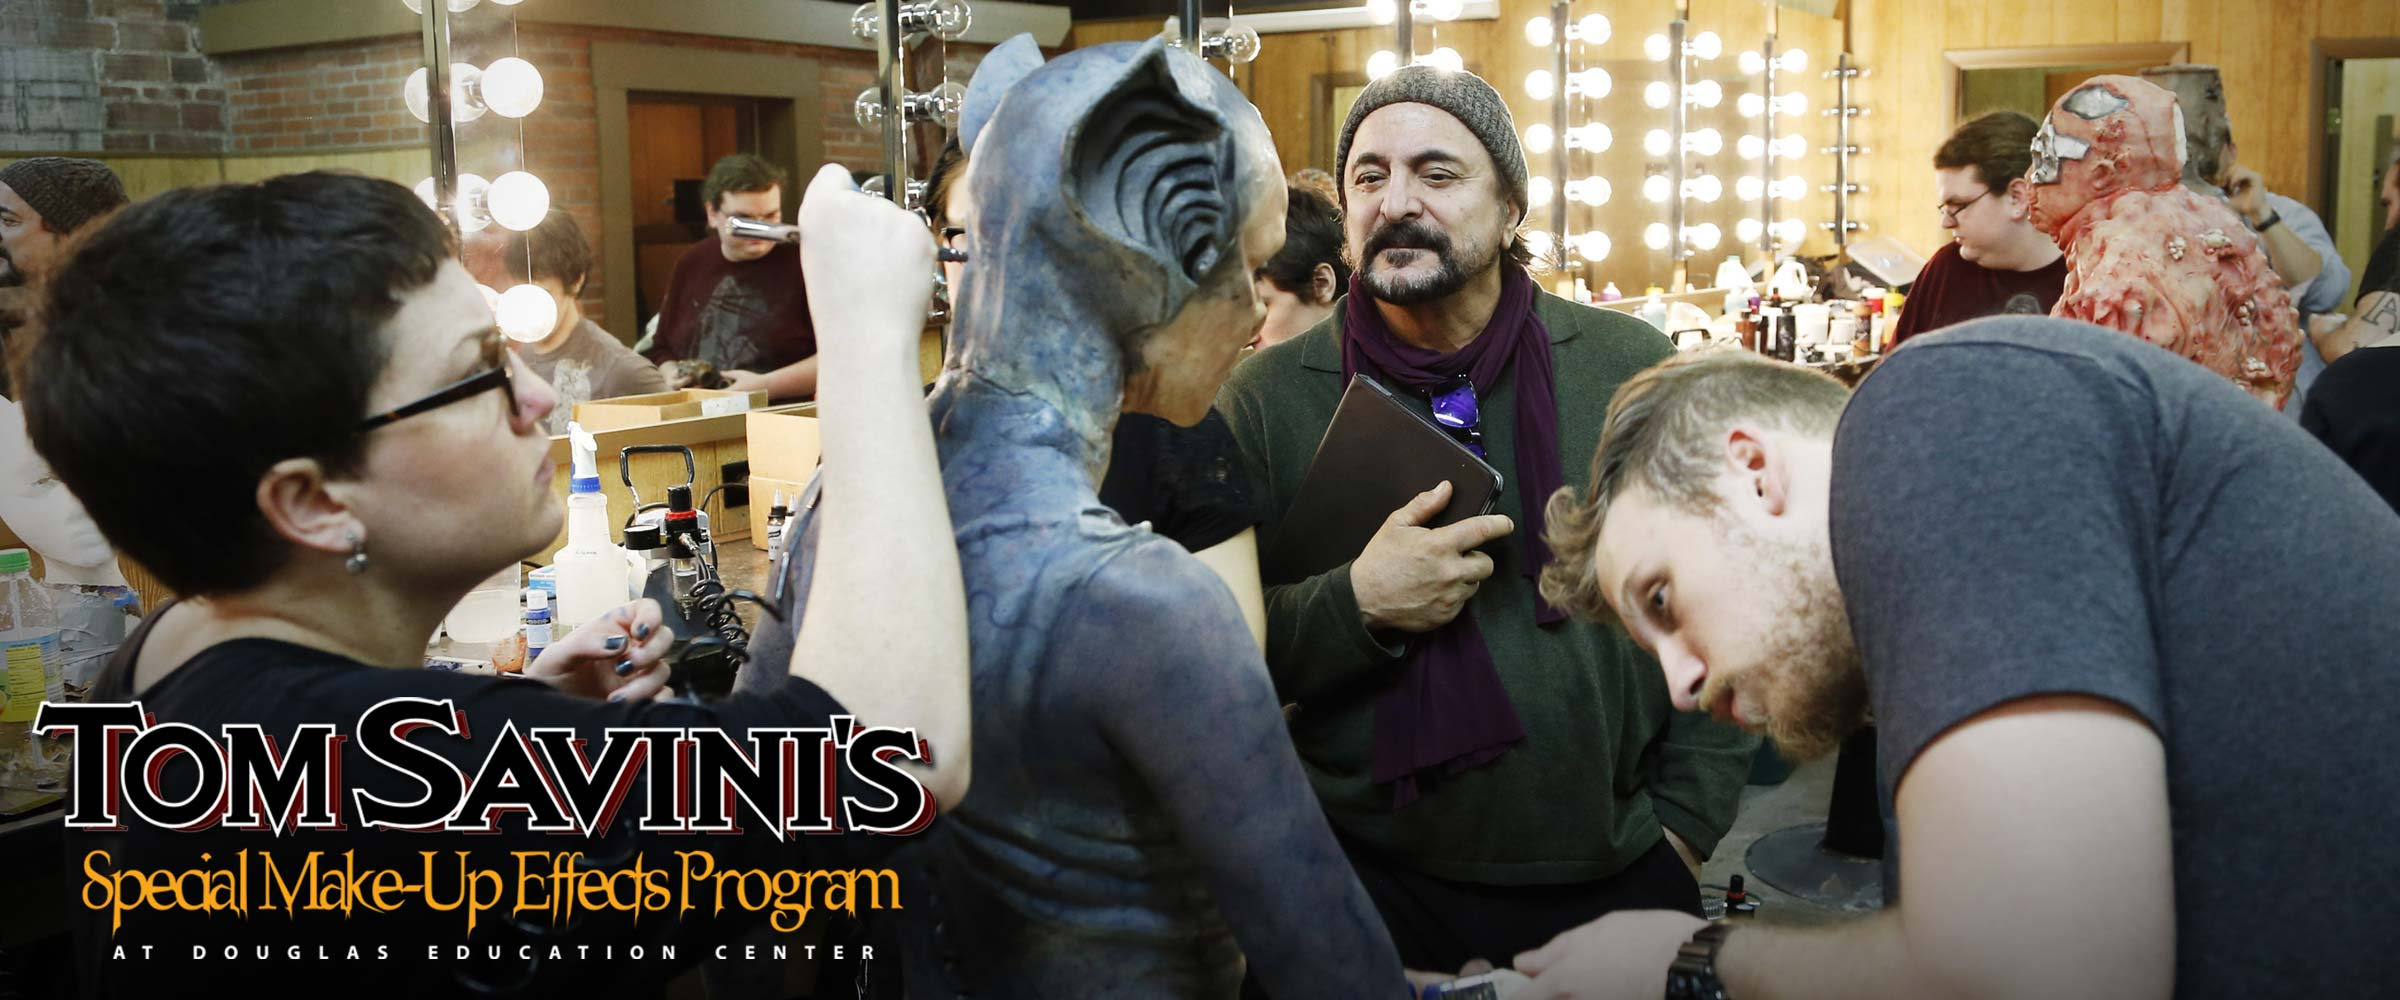 tom savini s special makeup effects program pennsylvania douglas